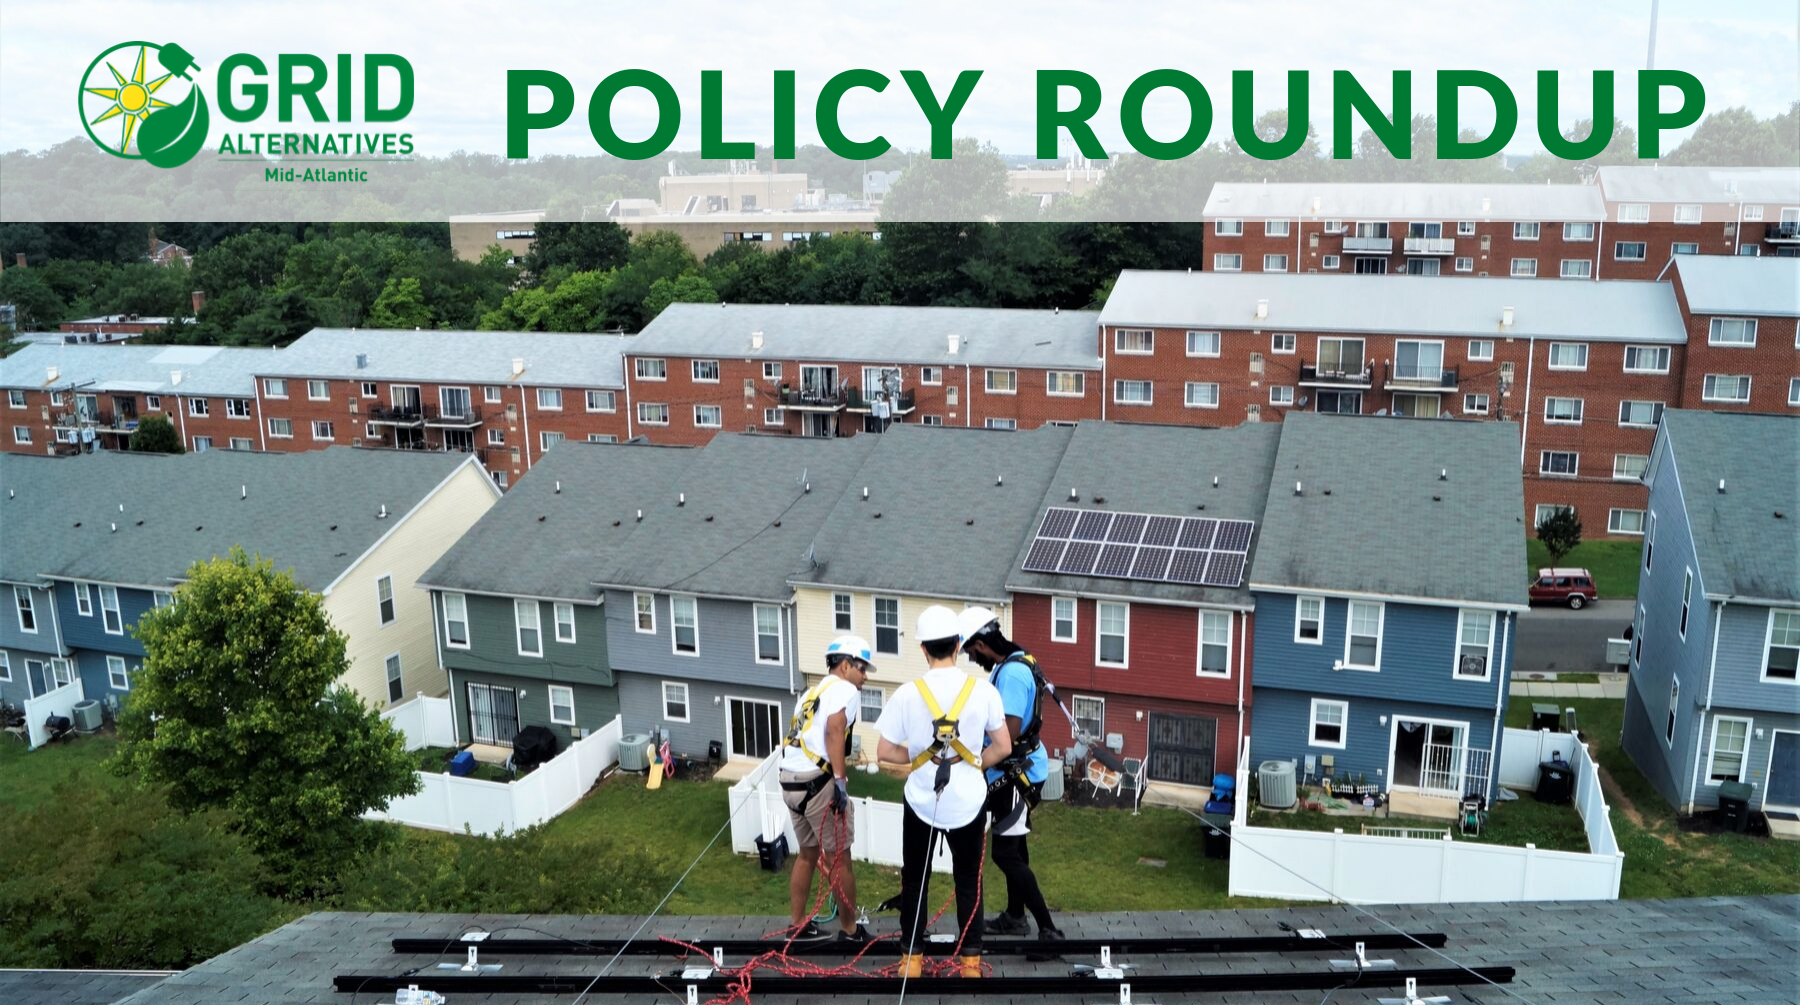 GRID Mid-Atlantic staff member Roy guides two volunteers on the roof during an install with the many homes of Lincoln Heights in the background.